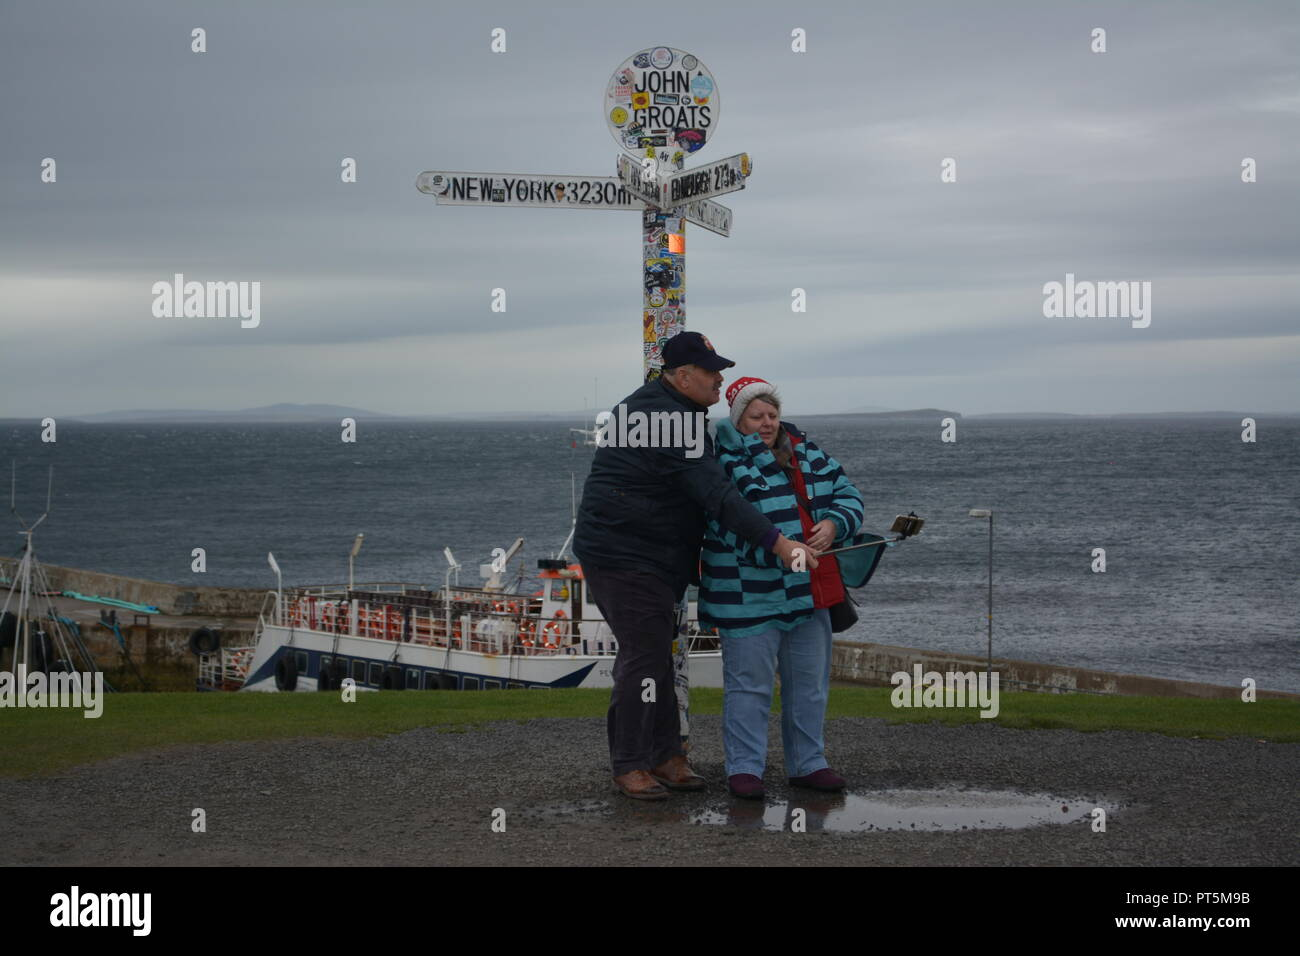 Elderly Tourists holidaymakers taking a selfie photograph under the John O'Groats signpost Caithness Scotland Great Britain UK United Kingdom - Stock Image